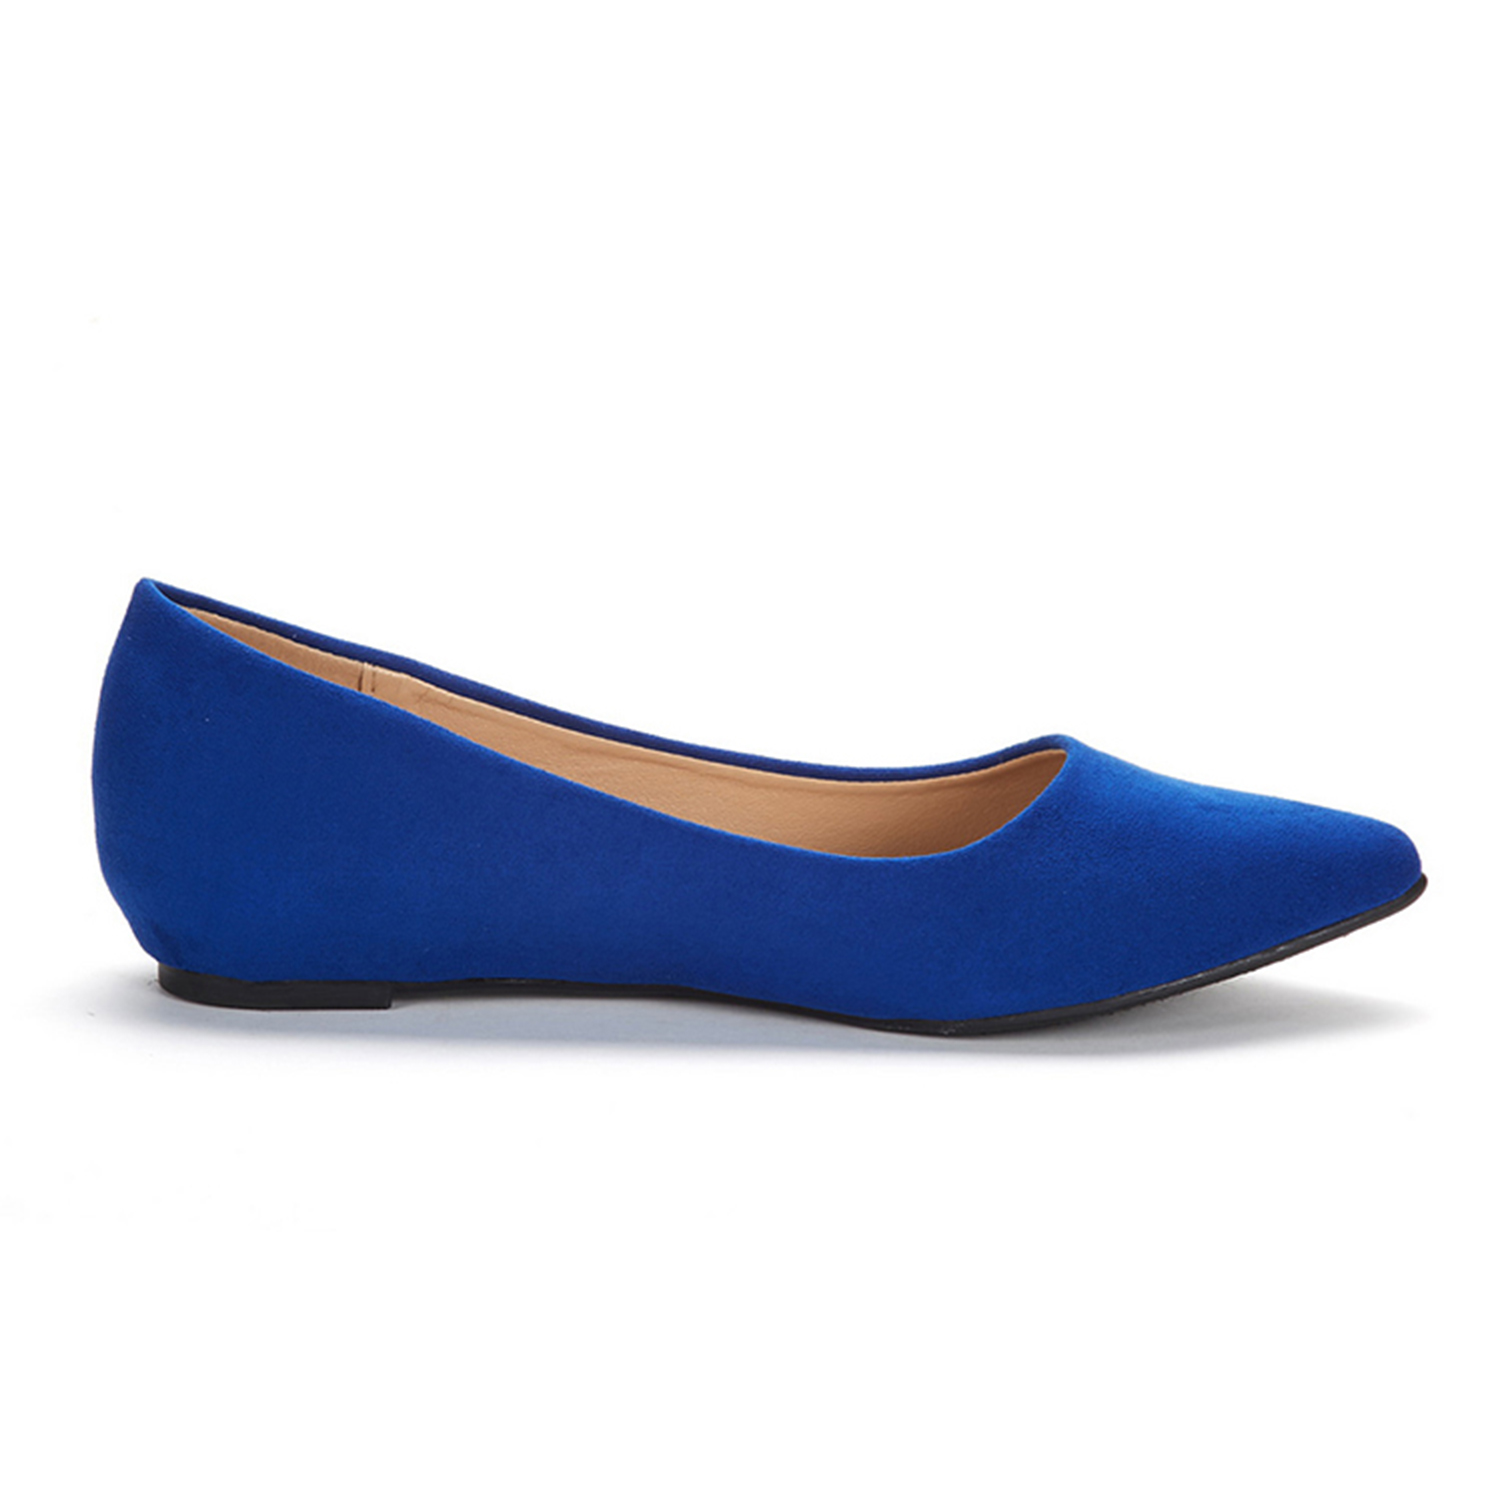 DREAM-PAIRS-Women-Low-Wedge-Flats-Ladies-Pointed-Toe-Slip-On-Comfort-Flat-Shoes thumbnail 12